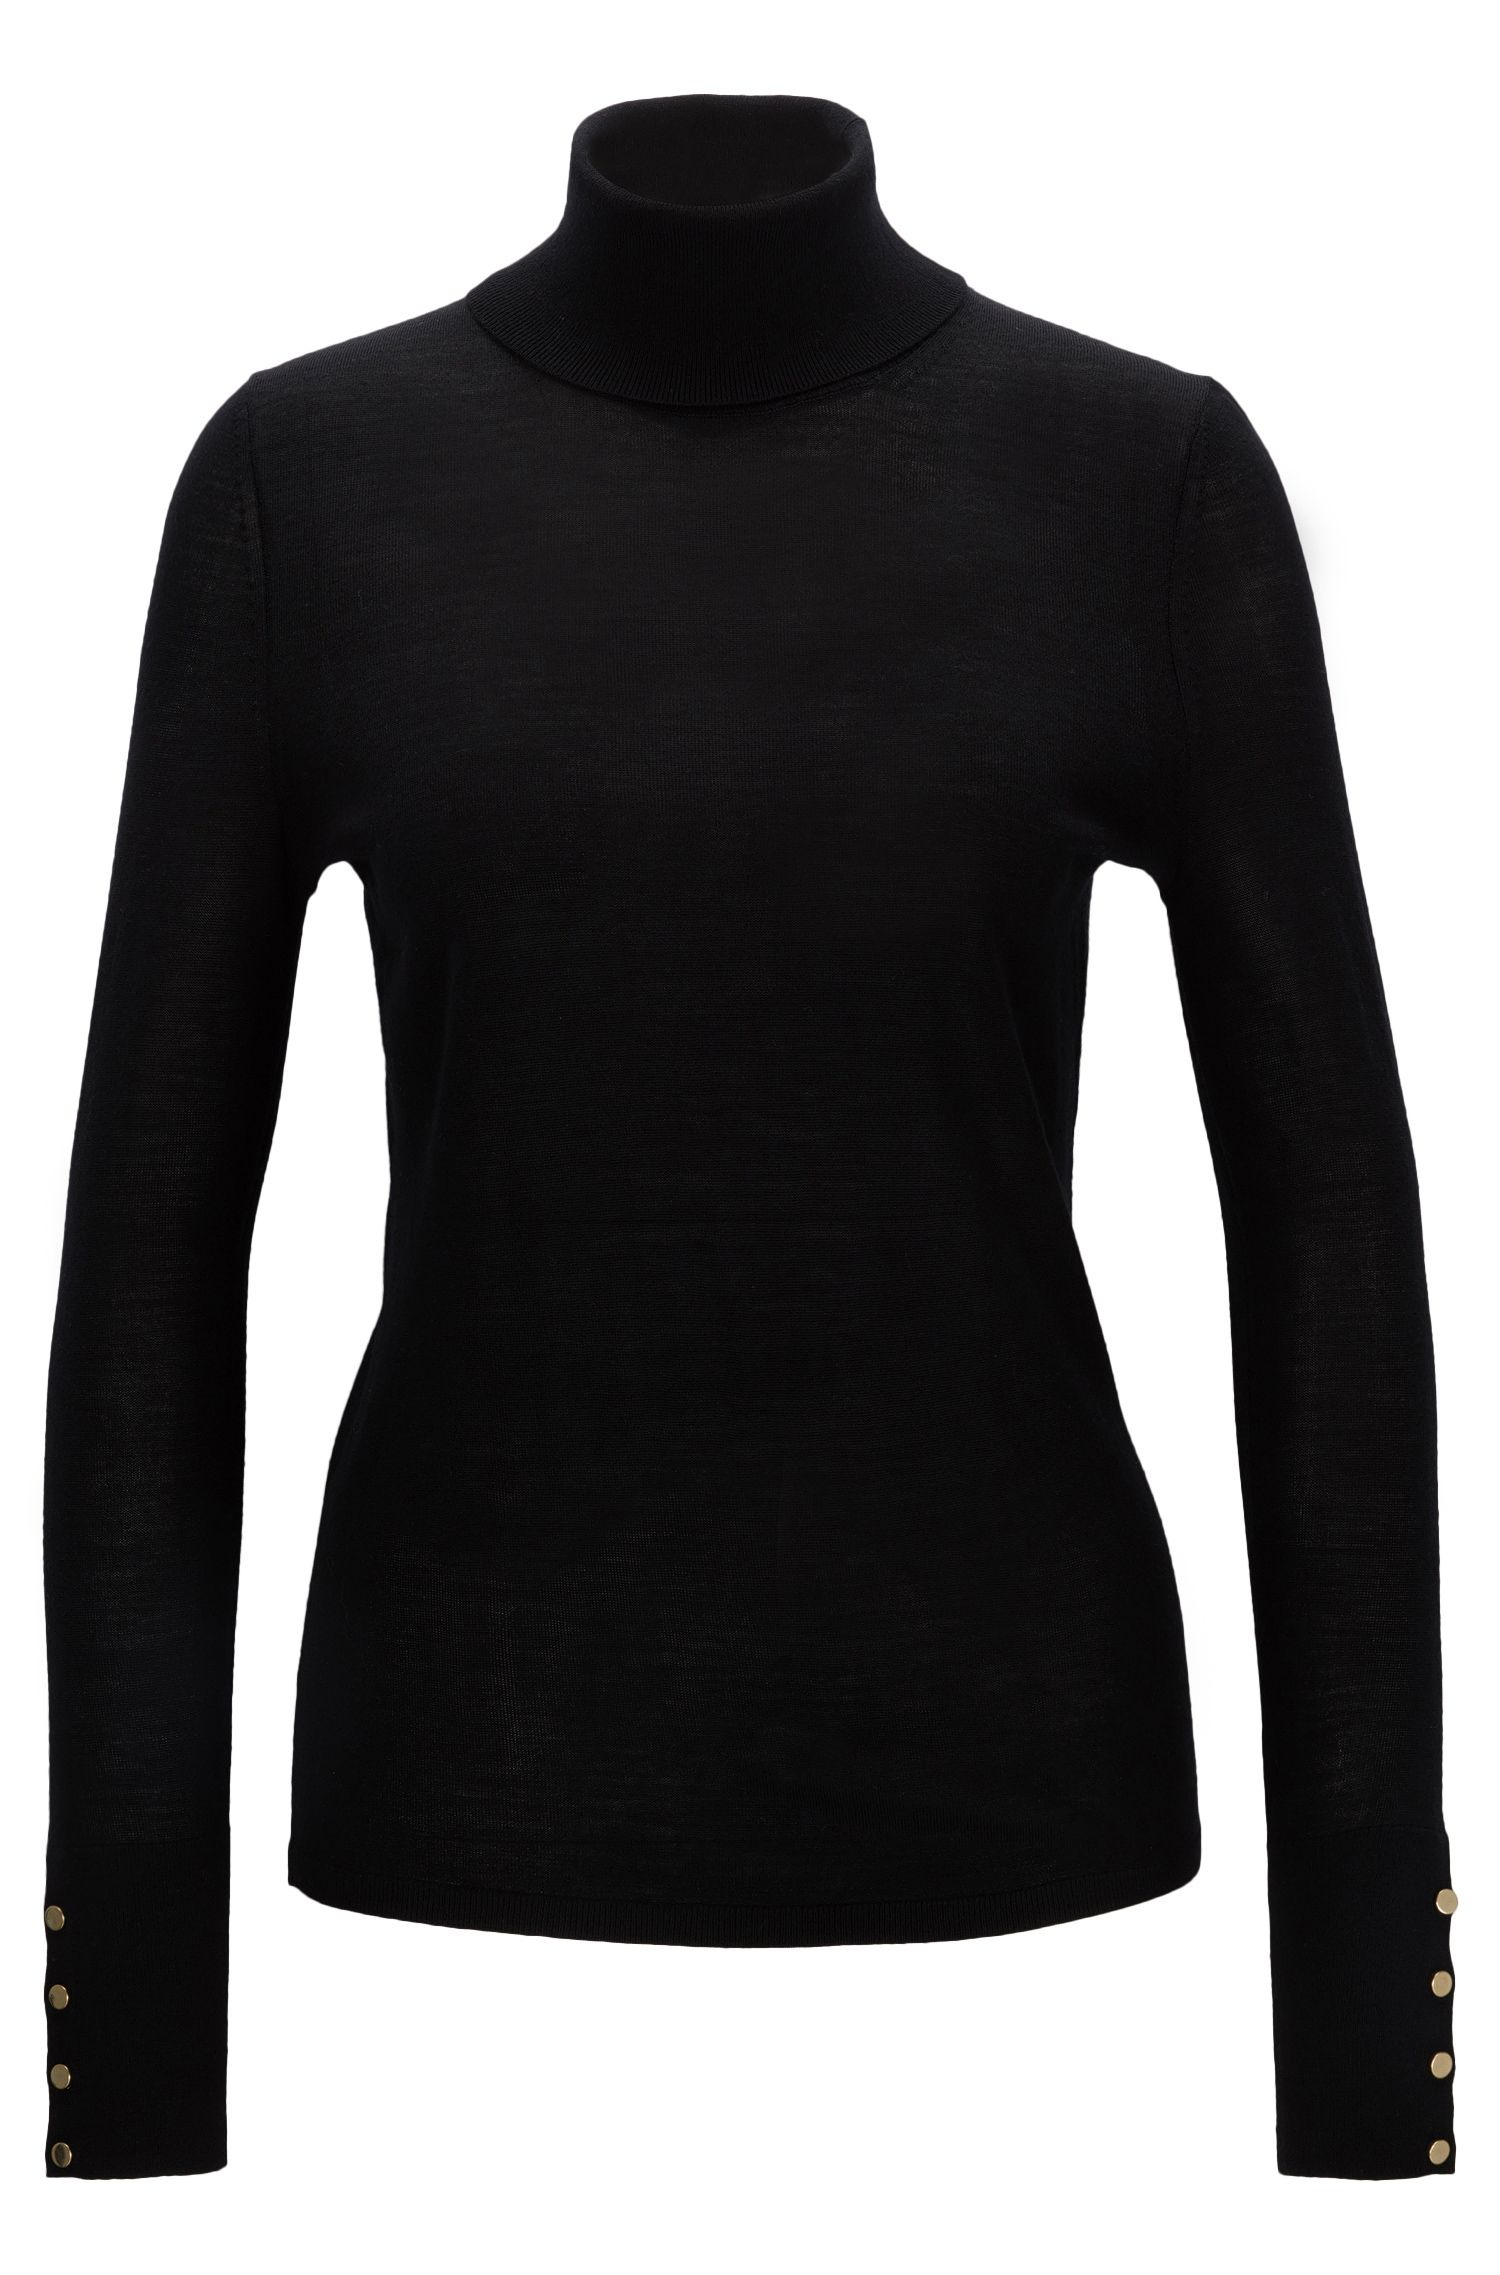 'Farrella' | Virgin Wool Turtleneck Sweater